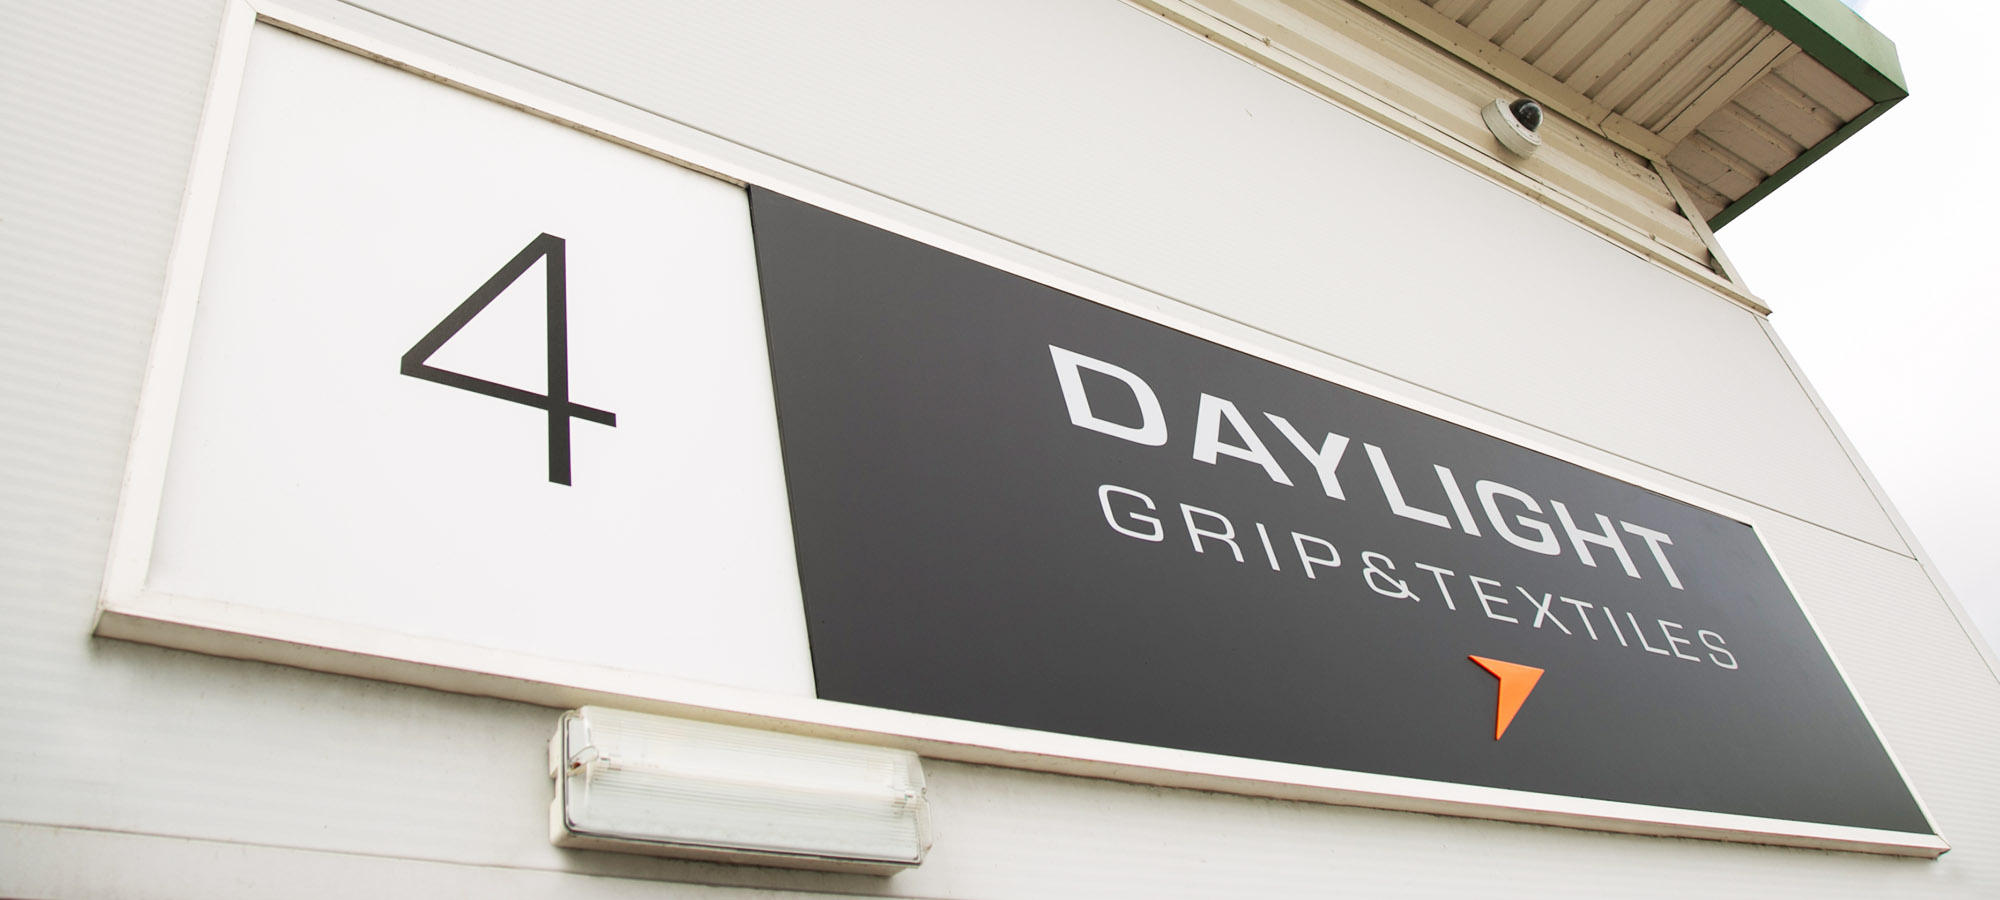 Daylight Grip and Textiles Manchester